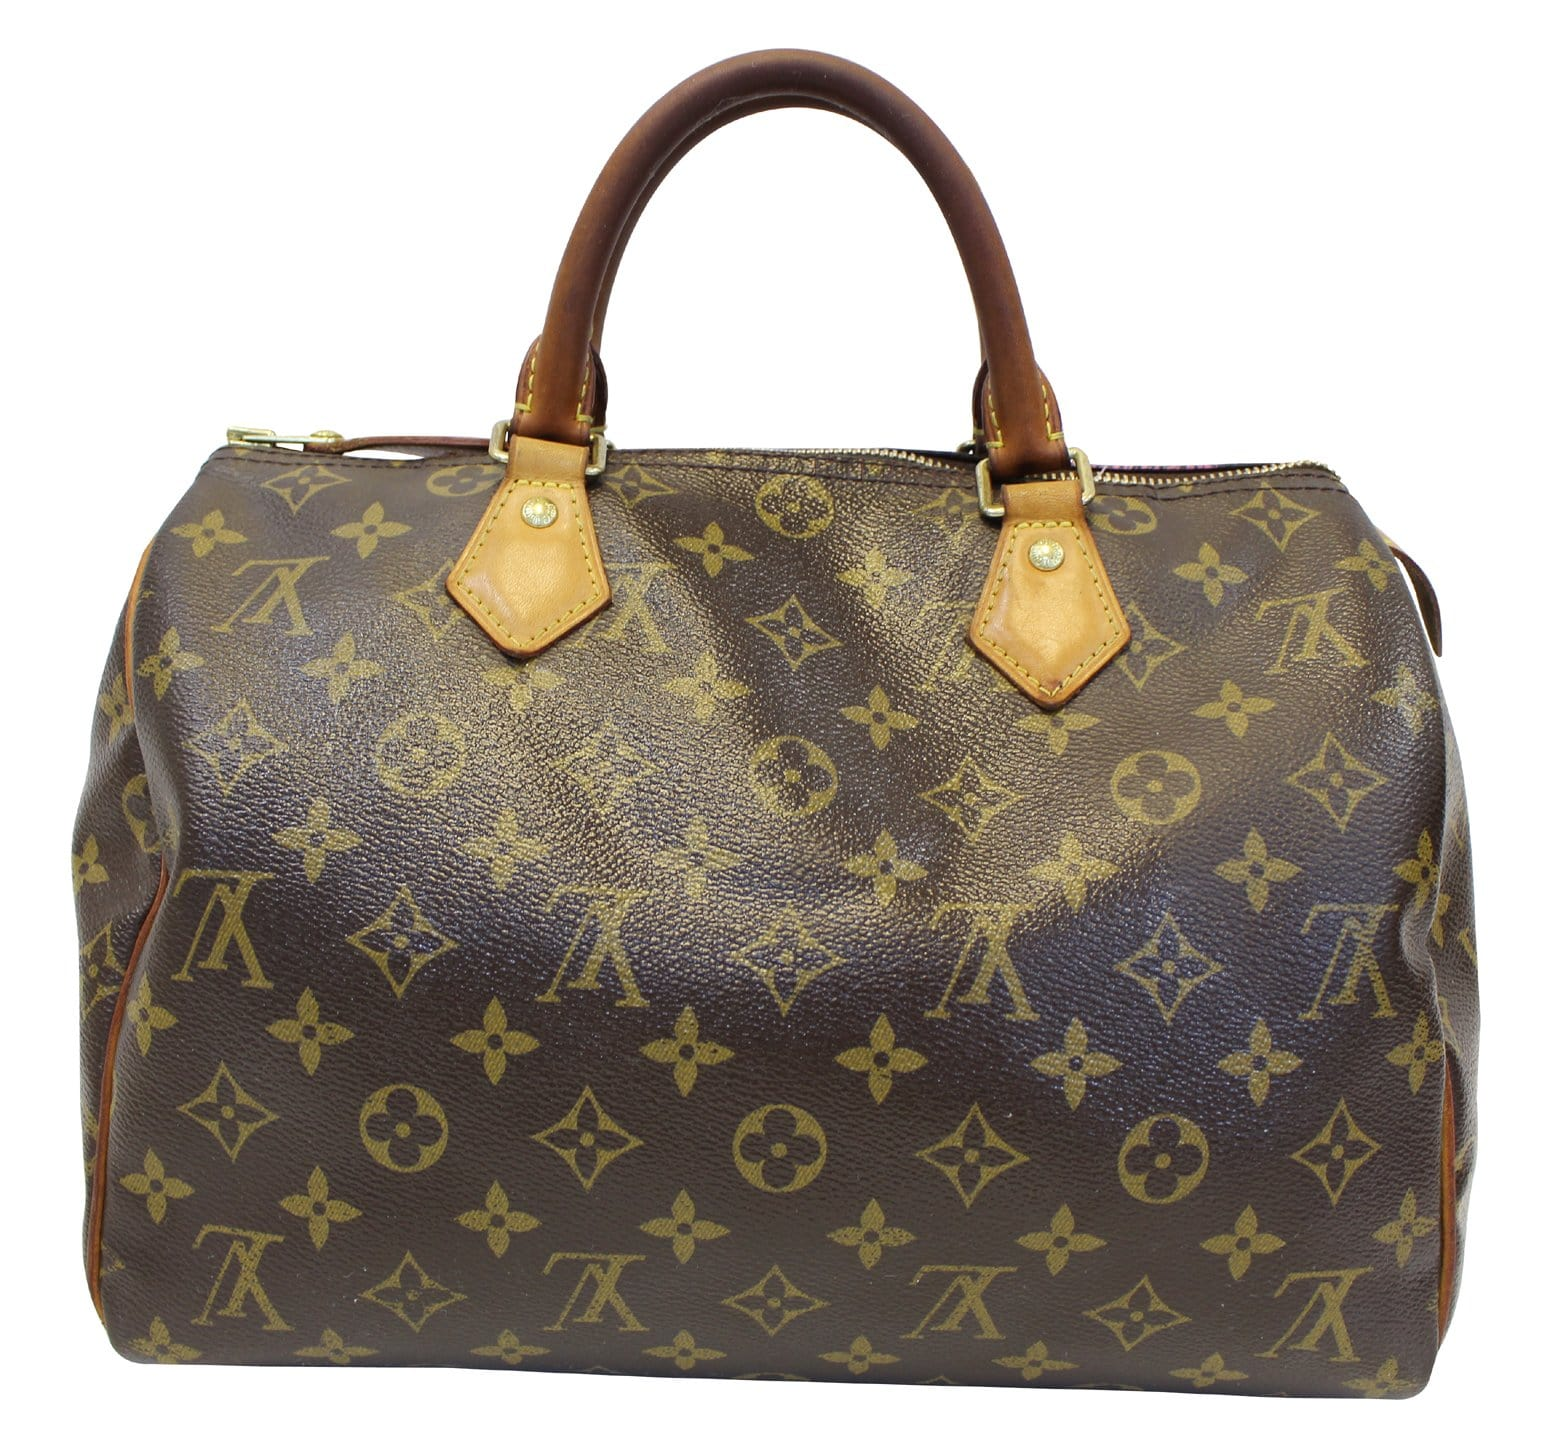 4ffeadf7e41a LOUIS VUITTON Speedy 30 Monogram Grenade Monogram V Satchel Bag